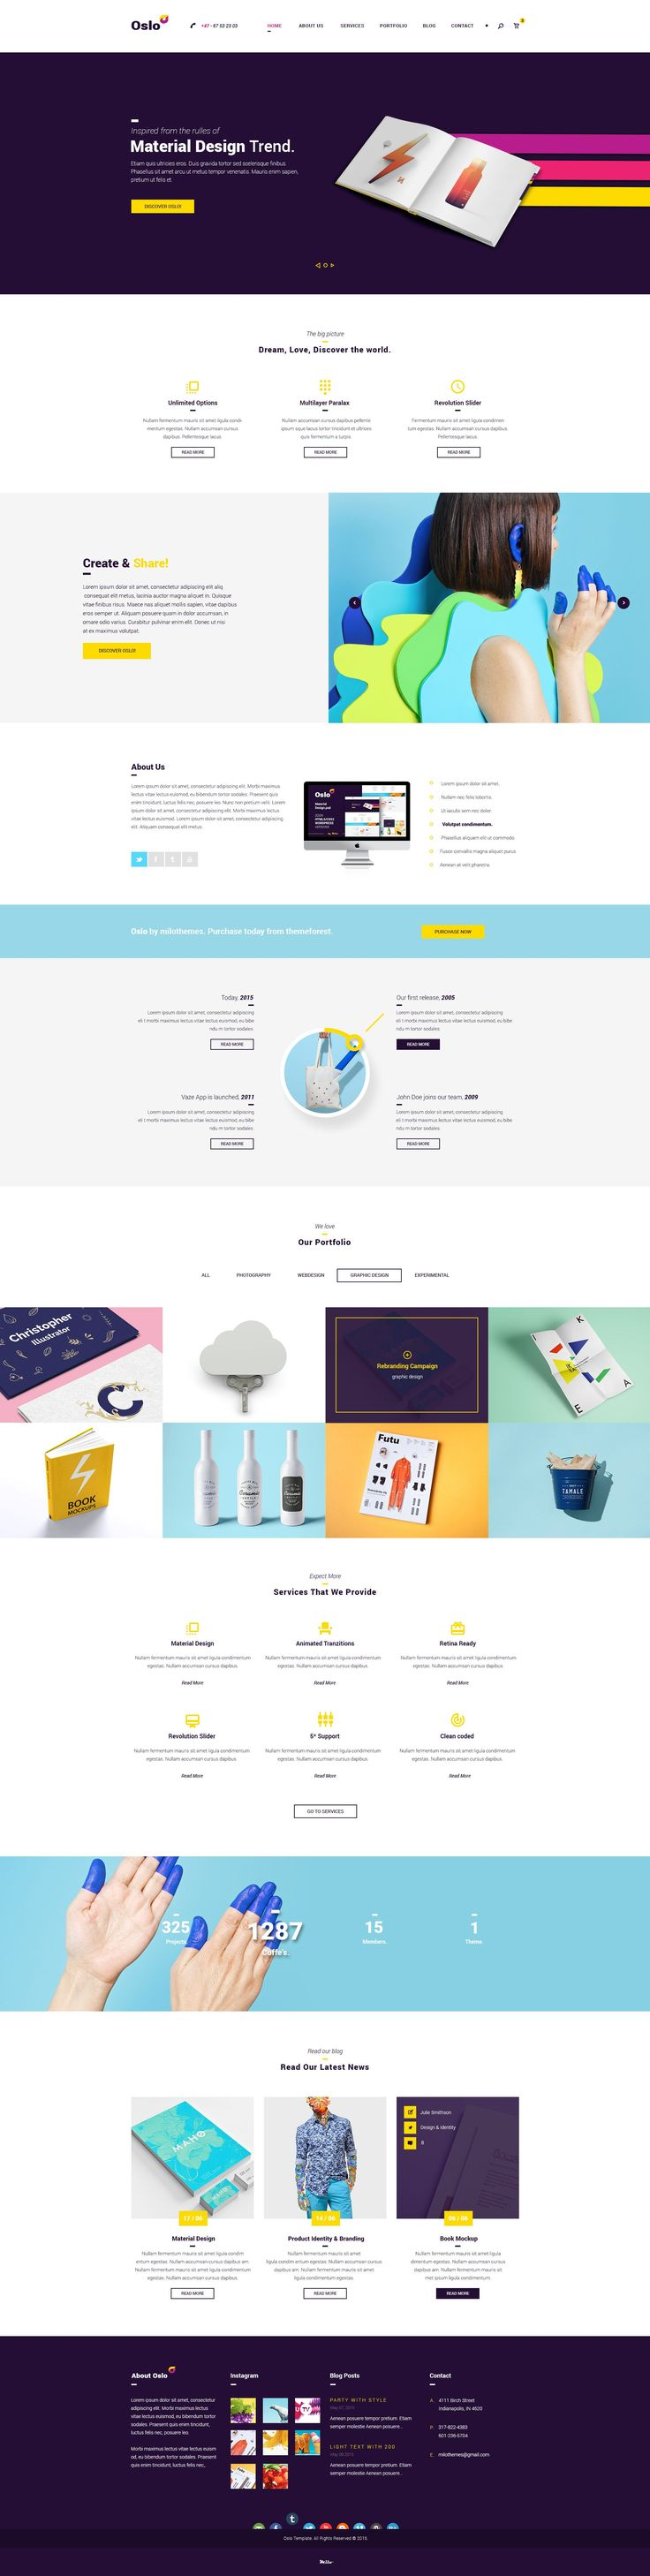 Oslo - Material Design PSD Website by milo on @creativemarket